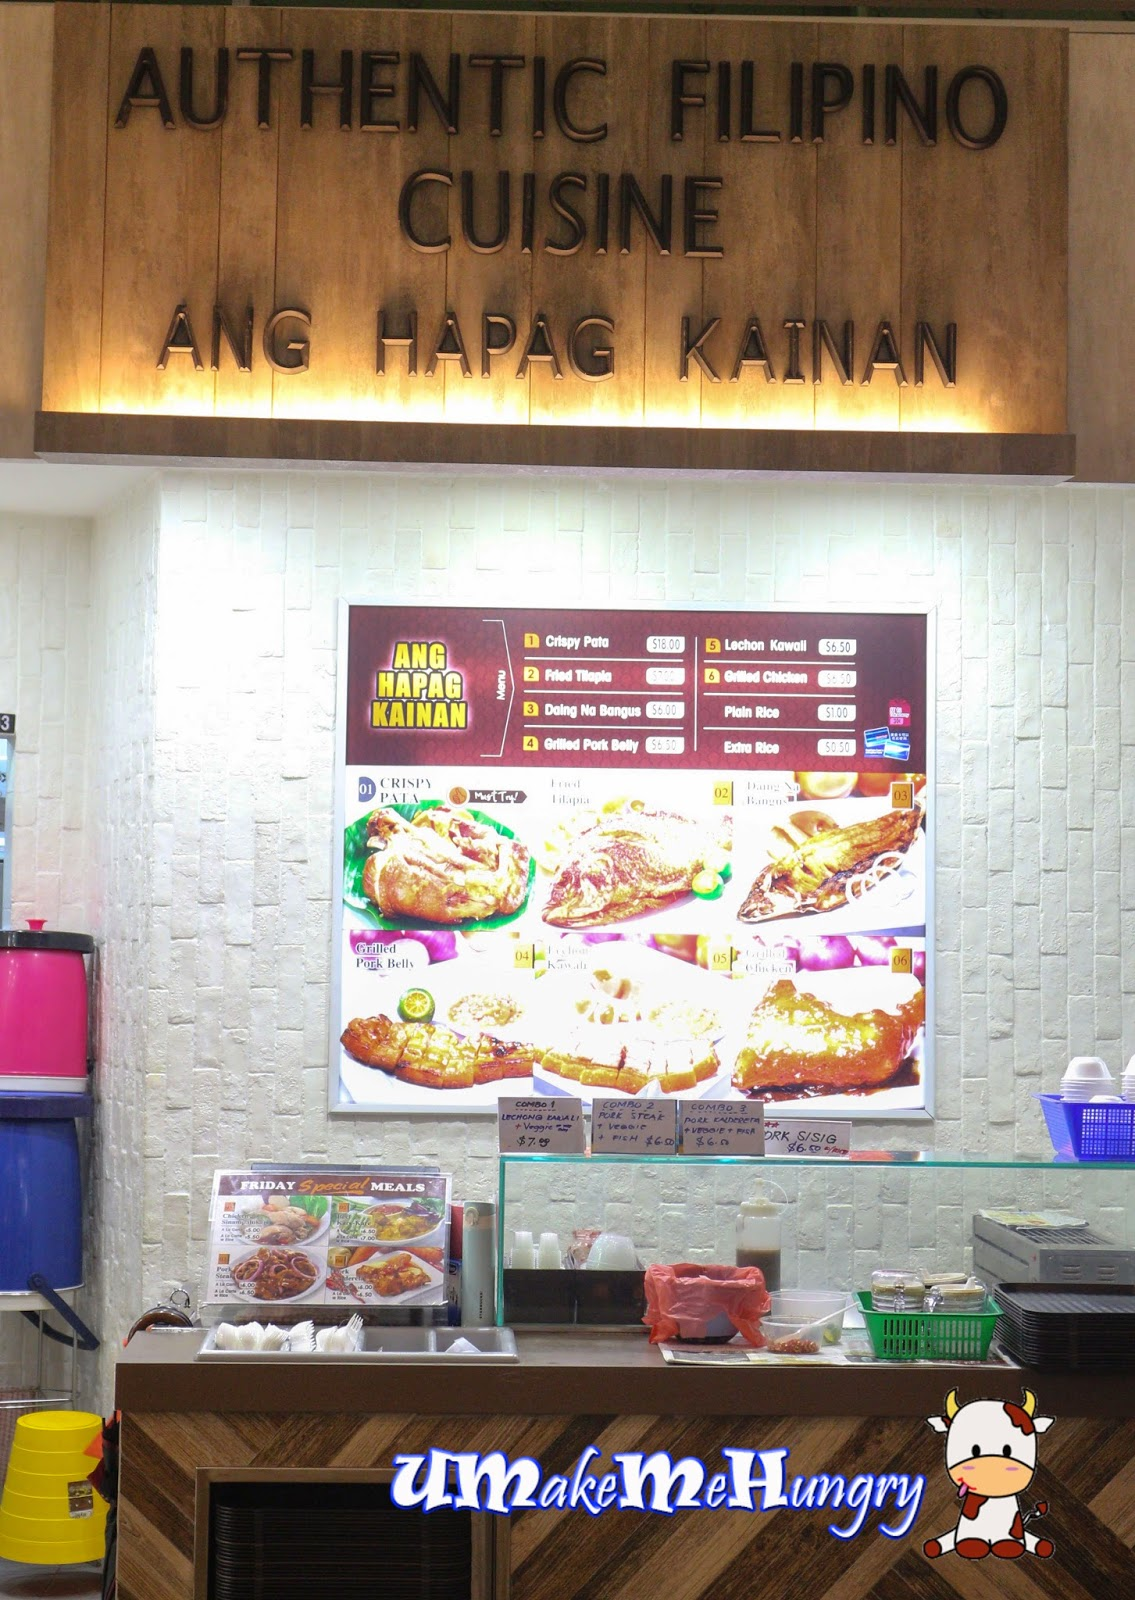 Ang hapag kainan authentic filipino cuisine for Authentic filipino cuisine